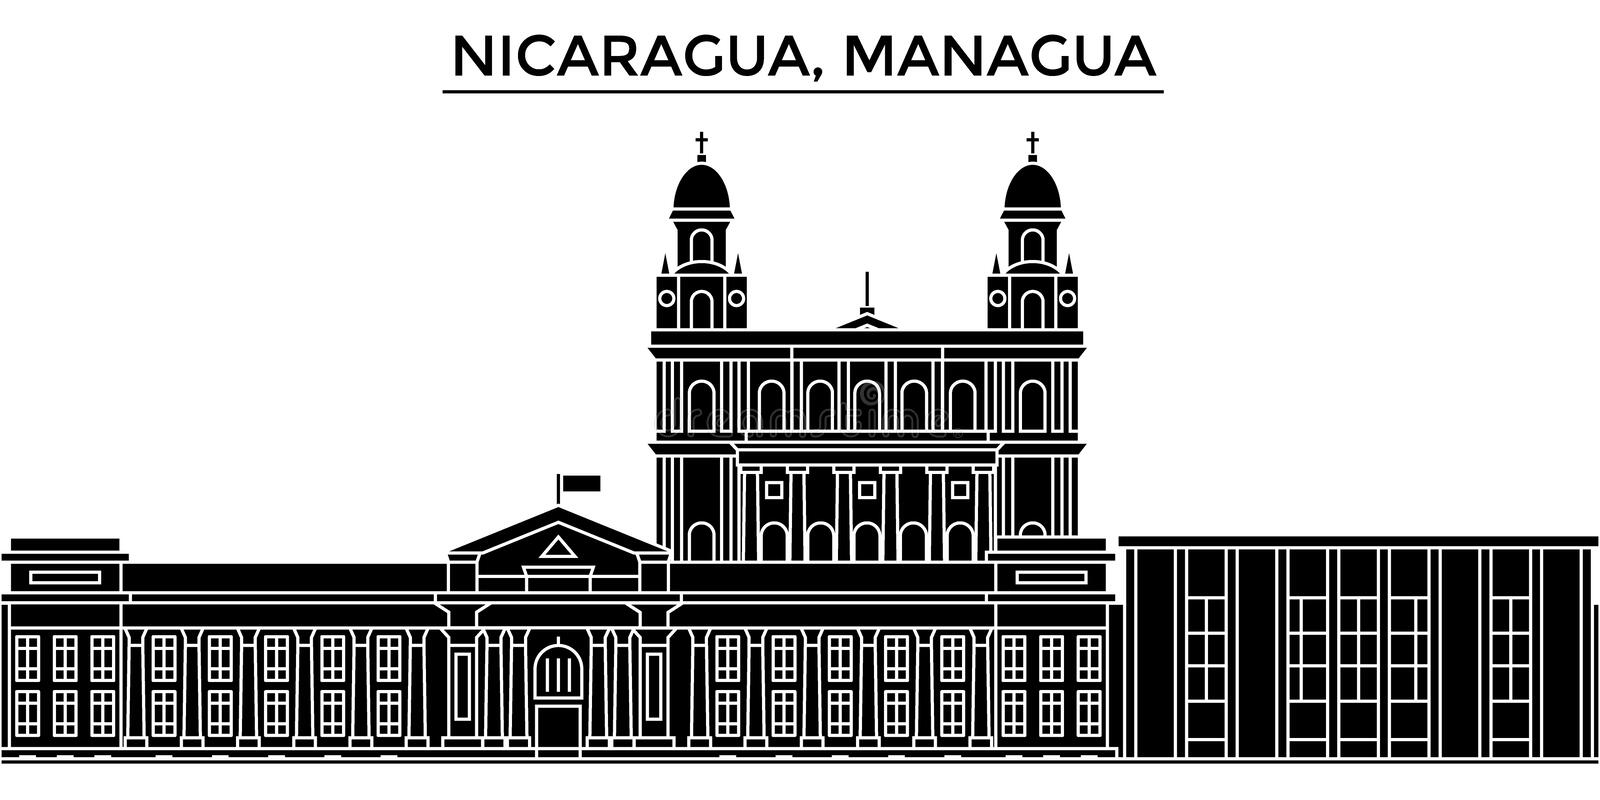 Nicaragua, Managua architecture vector city skyline, travel cityscape with landmarks, buildings, isolated sights on stock illustration